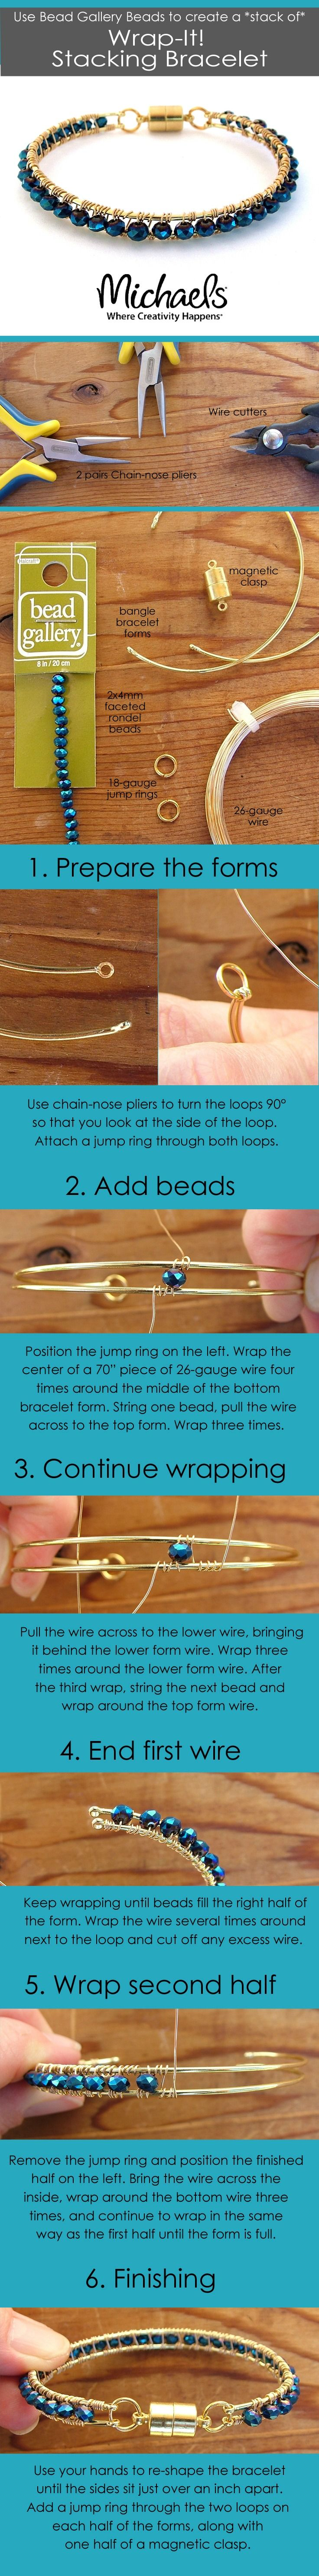 Bead Gallery® Faceted Rondelle Beads, Sapphire Glass | DIY Fashion ...